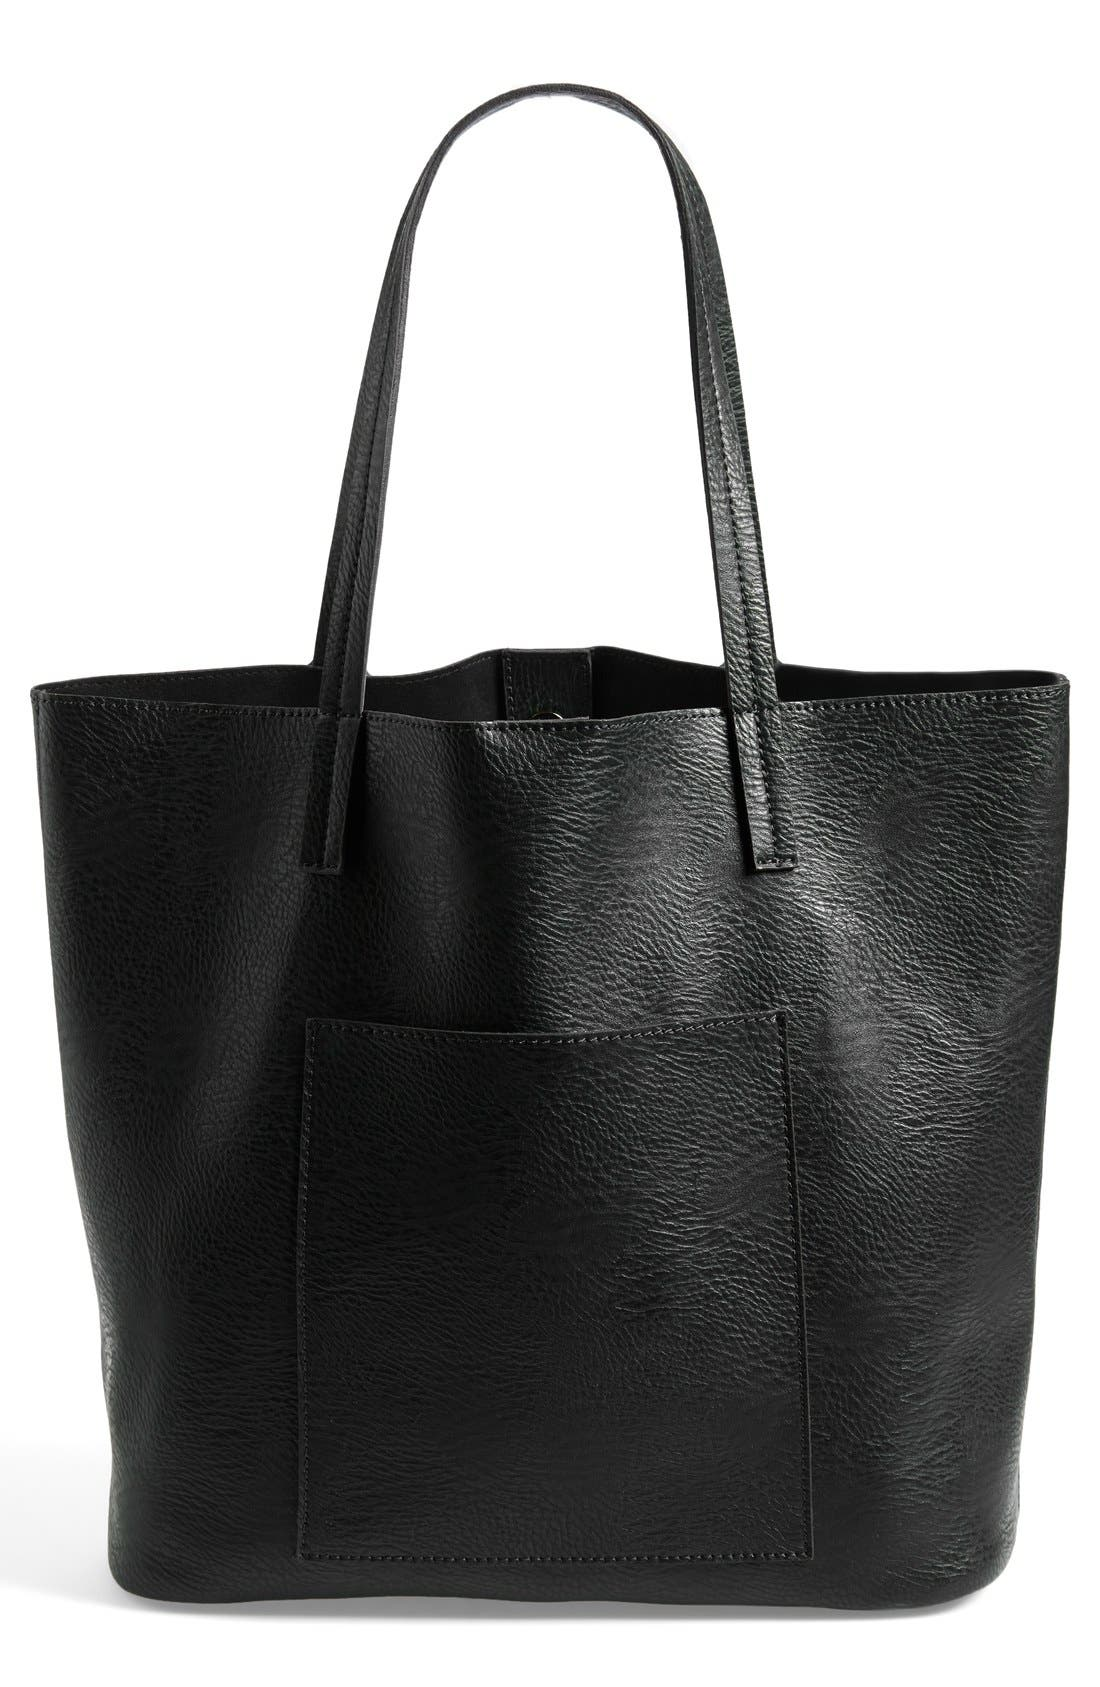 Alternate Image 1 Selected - Street Level Faux Leather Pocket Tote